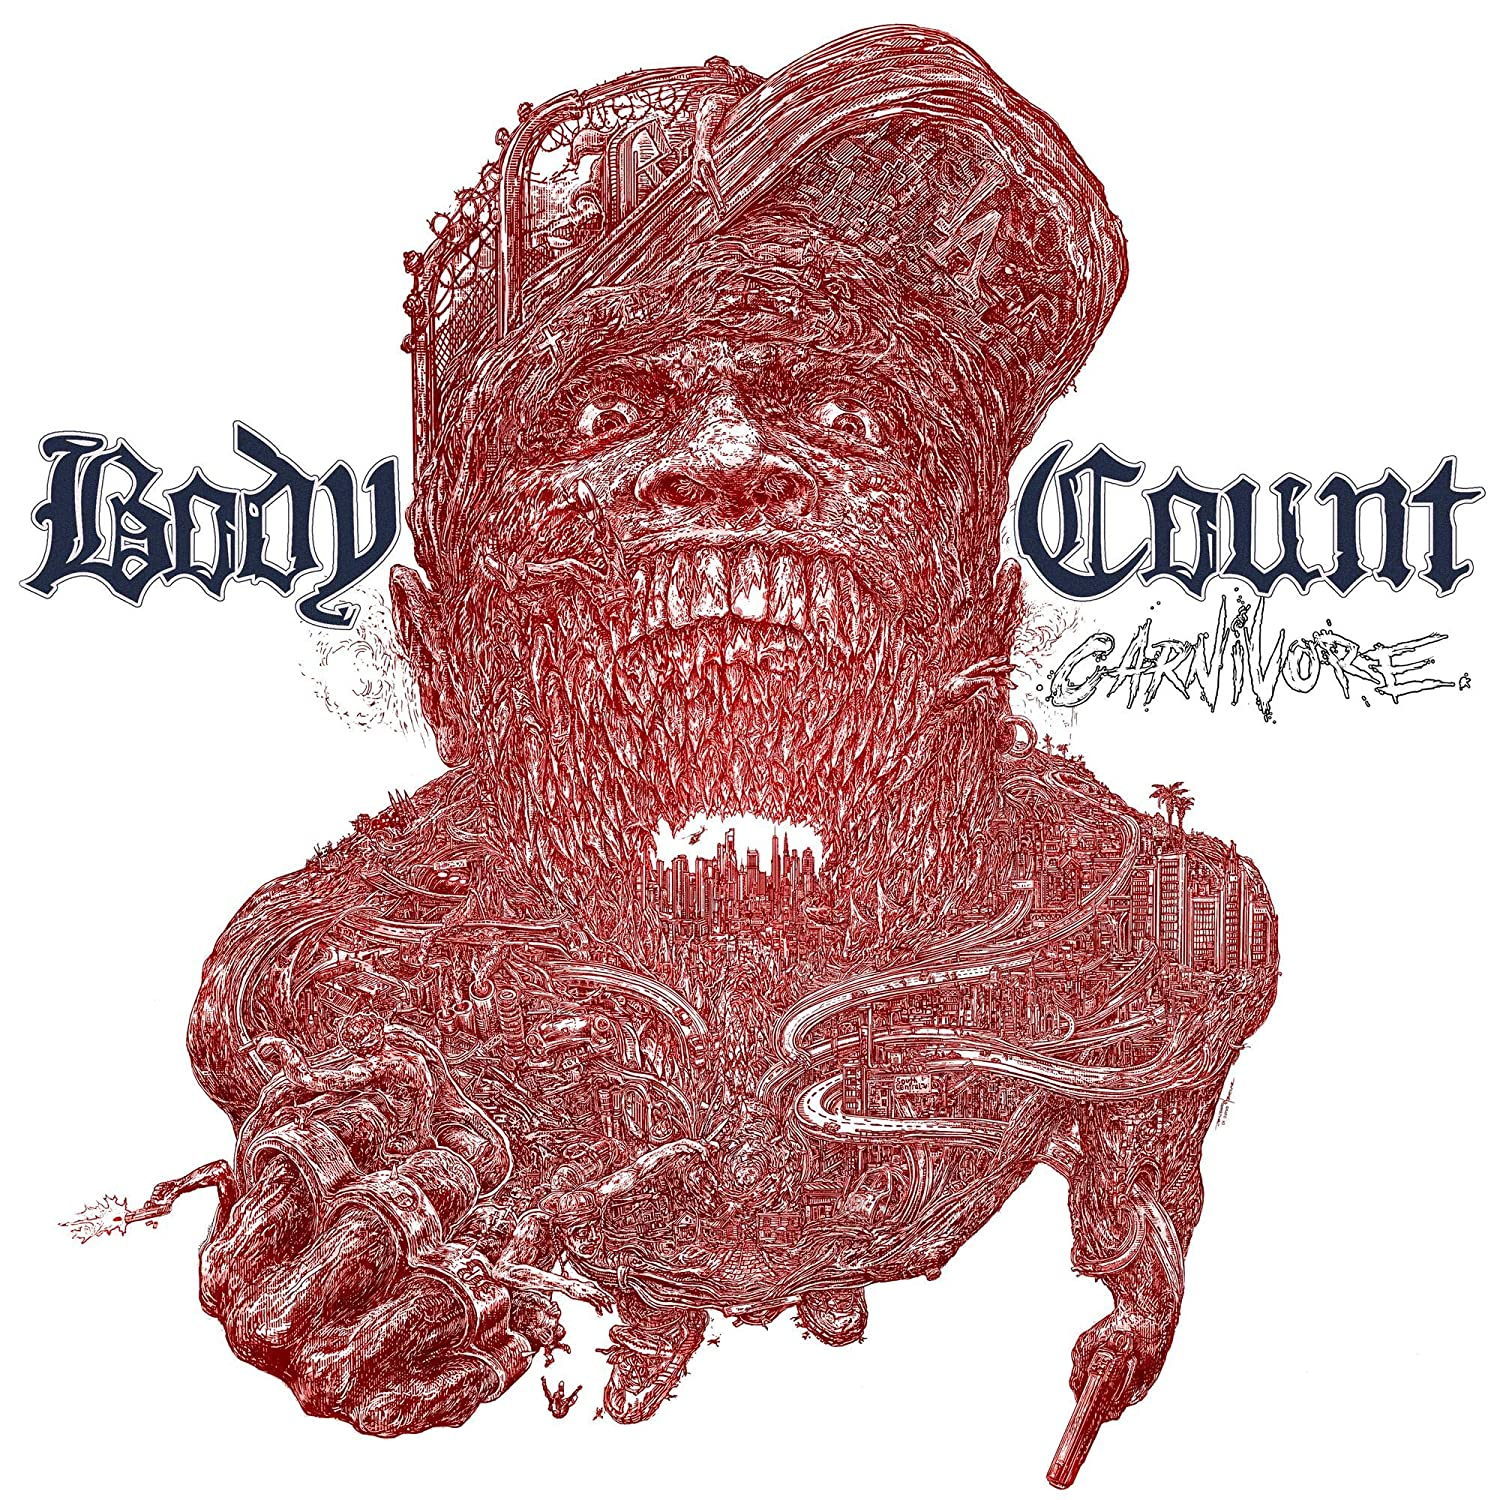 Bodycount - 'Carnivore' Ltd Ed. Gatefold 180gm Blue LP plus poster & CD